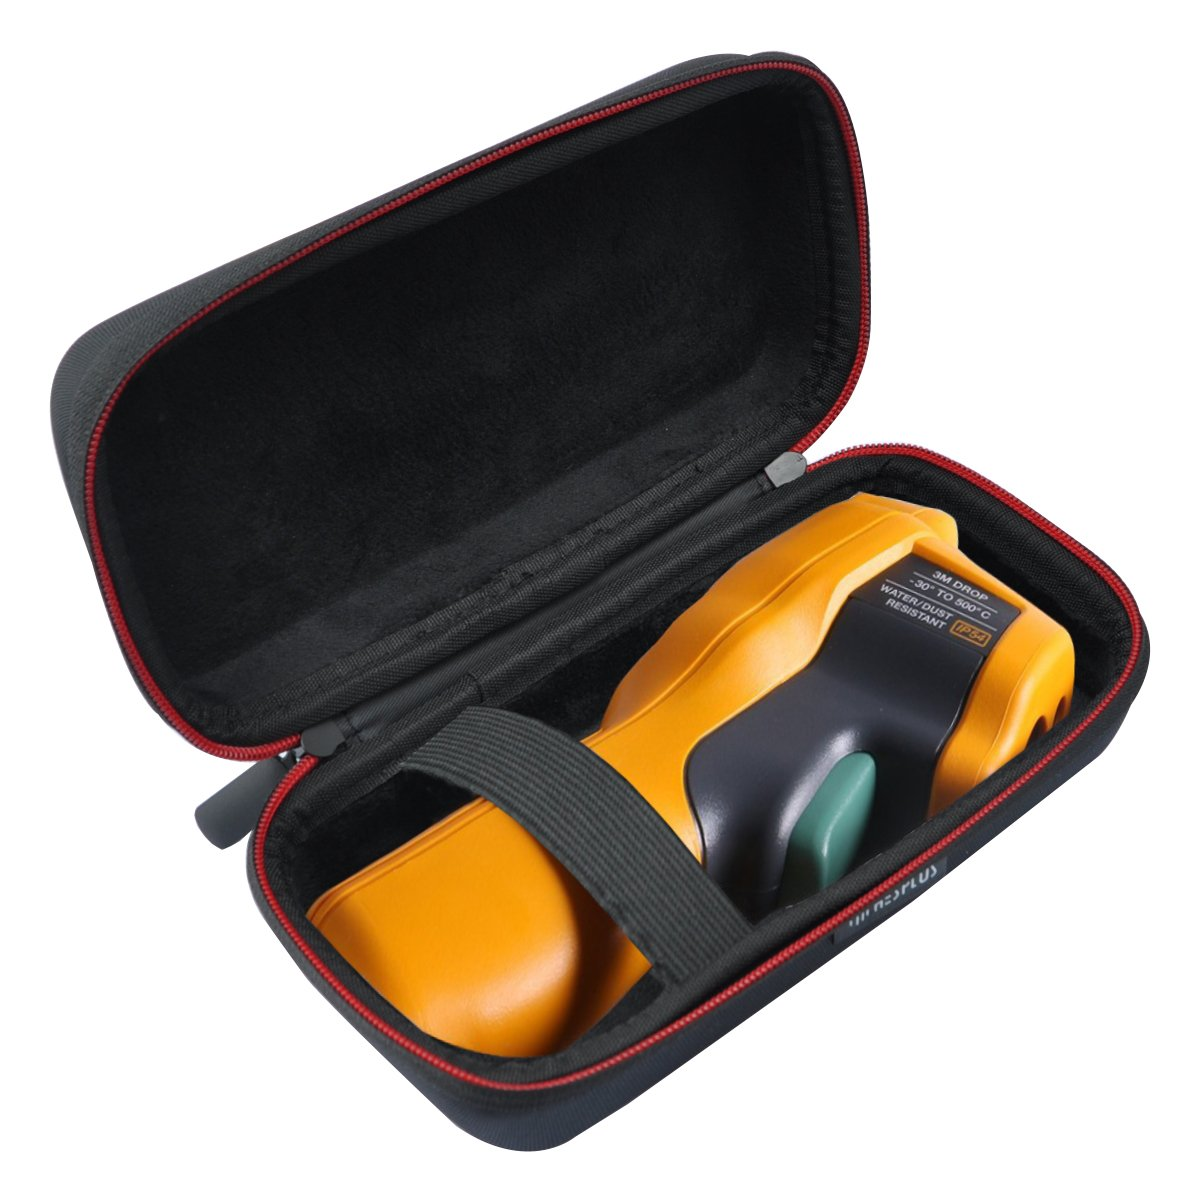 HESPLUS Hard Case for Fluke 62 Max/Fluke 62 / Fluke 64 Max/Fluke 59 Max/Fluke 59 Max+ Plus Infrared IR Thermometer - Black HPEV035